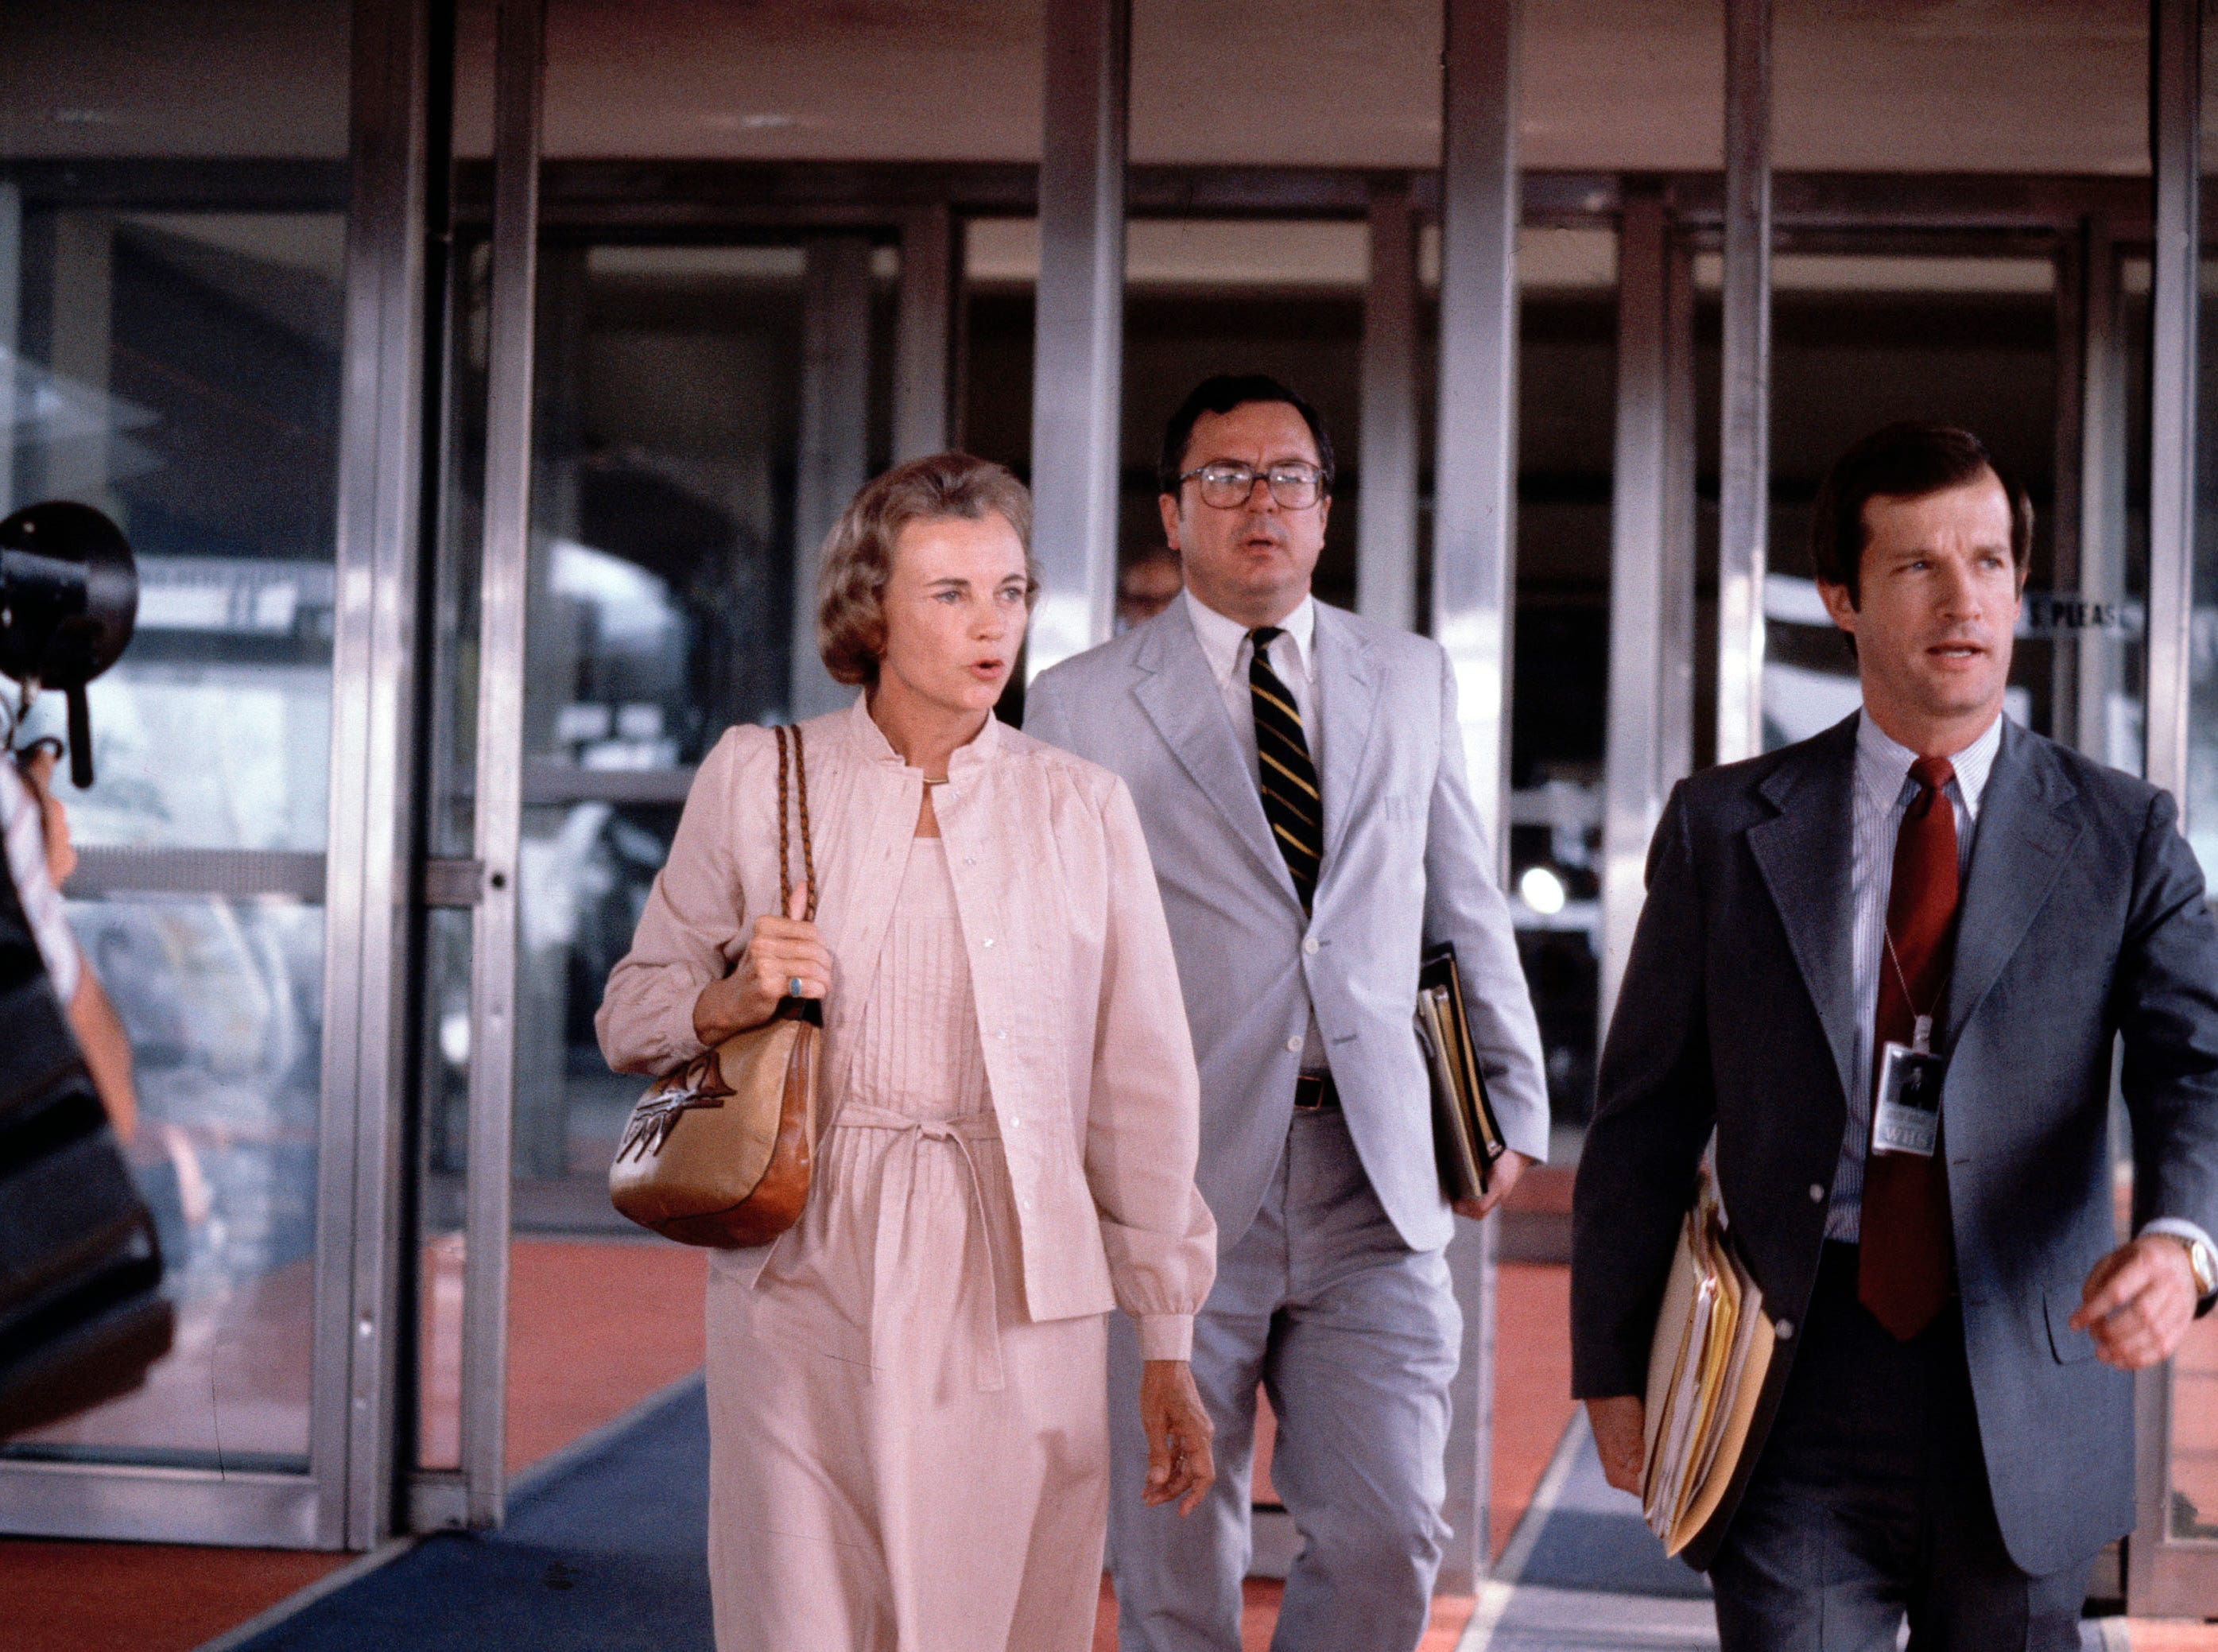 Supreme Court nominee Sandra Day O'Connor leaves Washington National Airport, July 1981.  Others are unidentified.